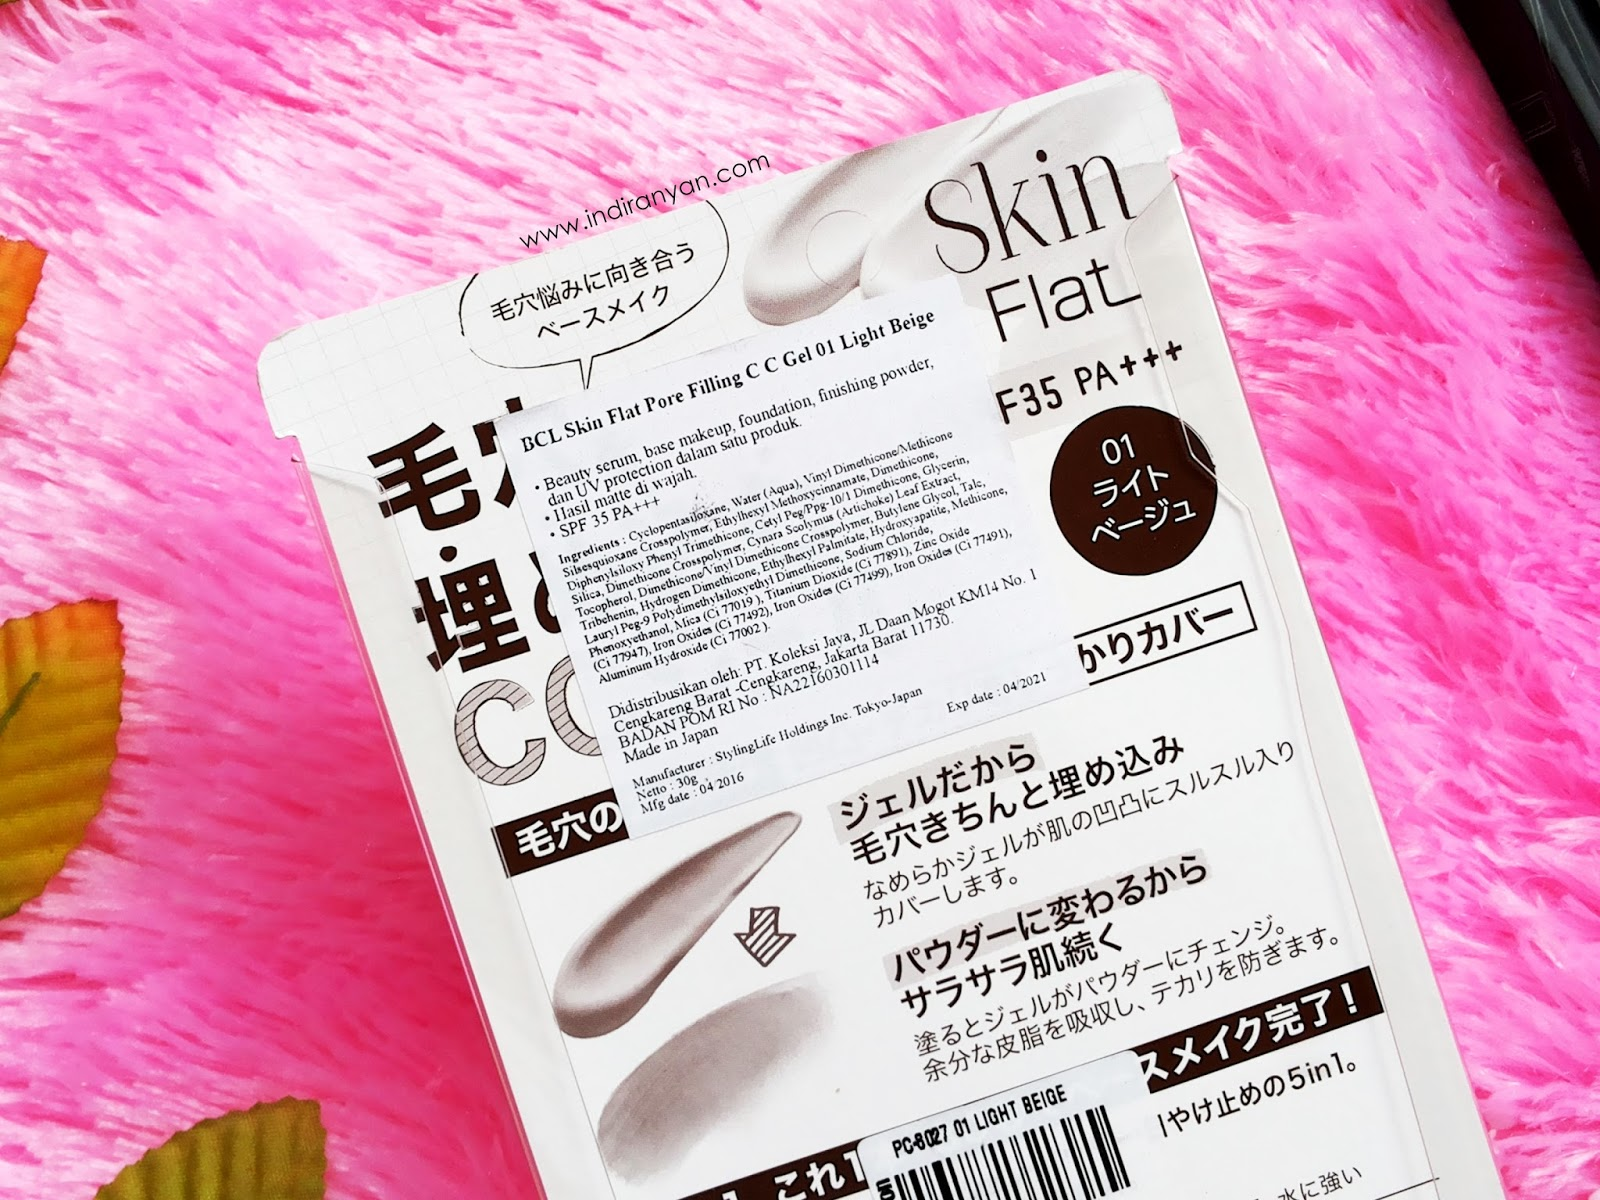 skin-flat-pore-filling-cc-gel-review, skin-flat-cc-gel